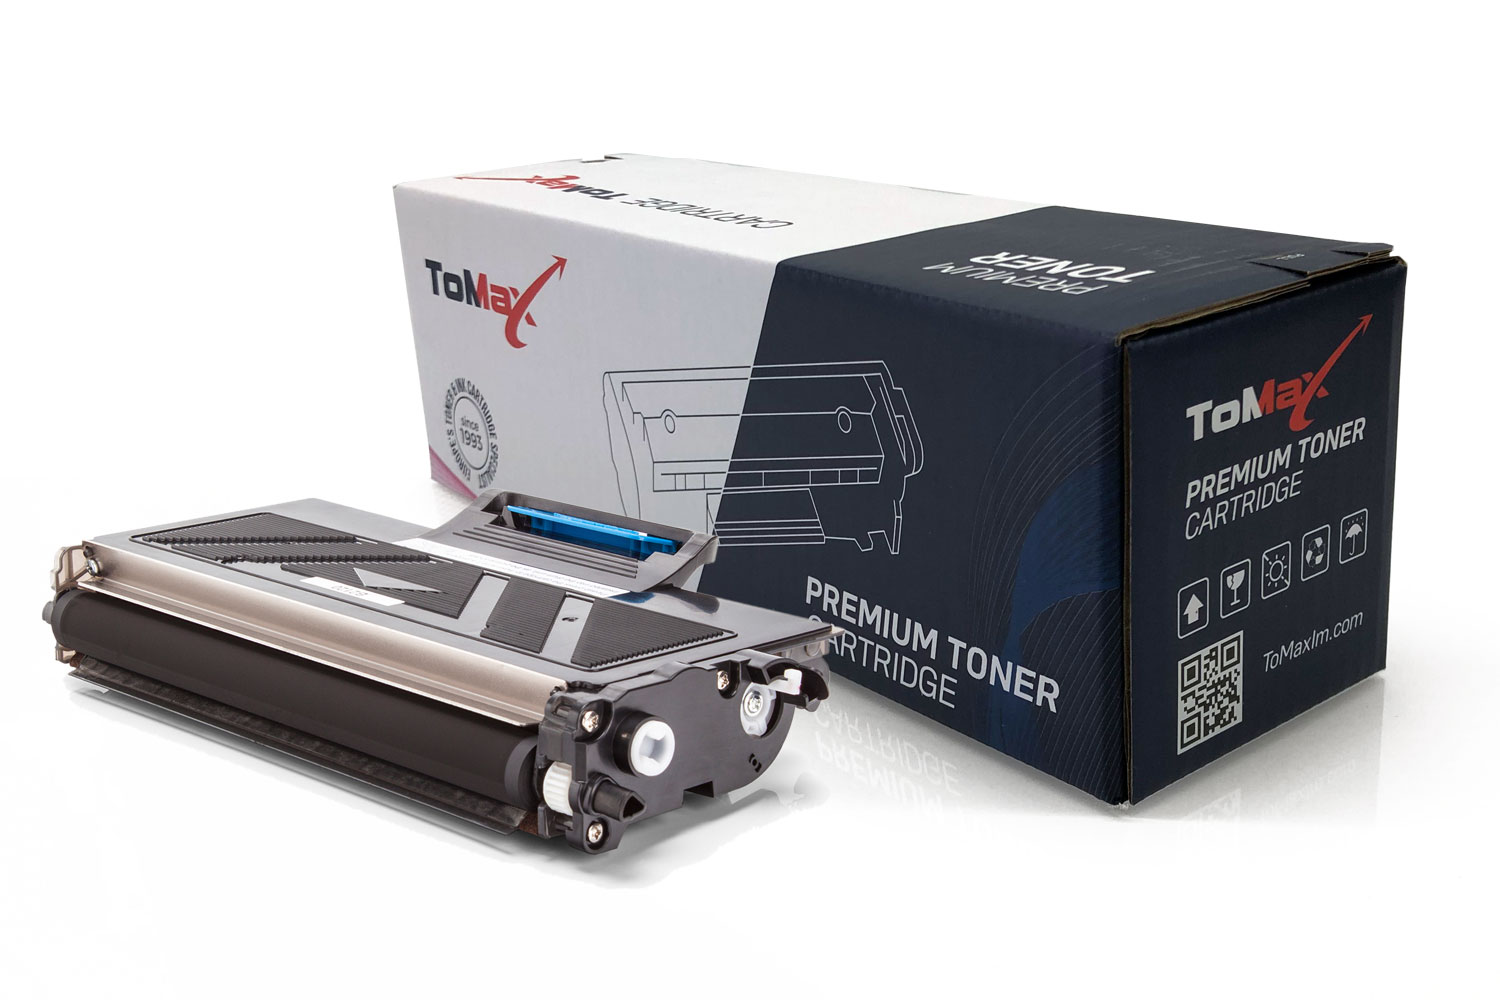 ToMax Premium Toner Cartridge replaces Brother TN-325BK Black